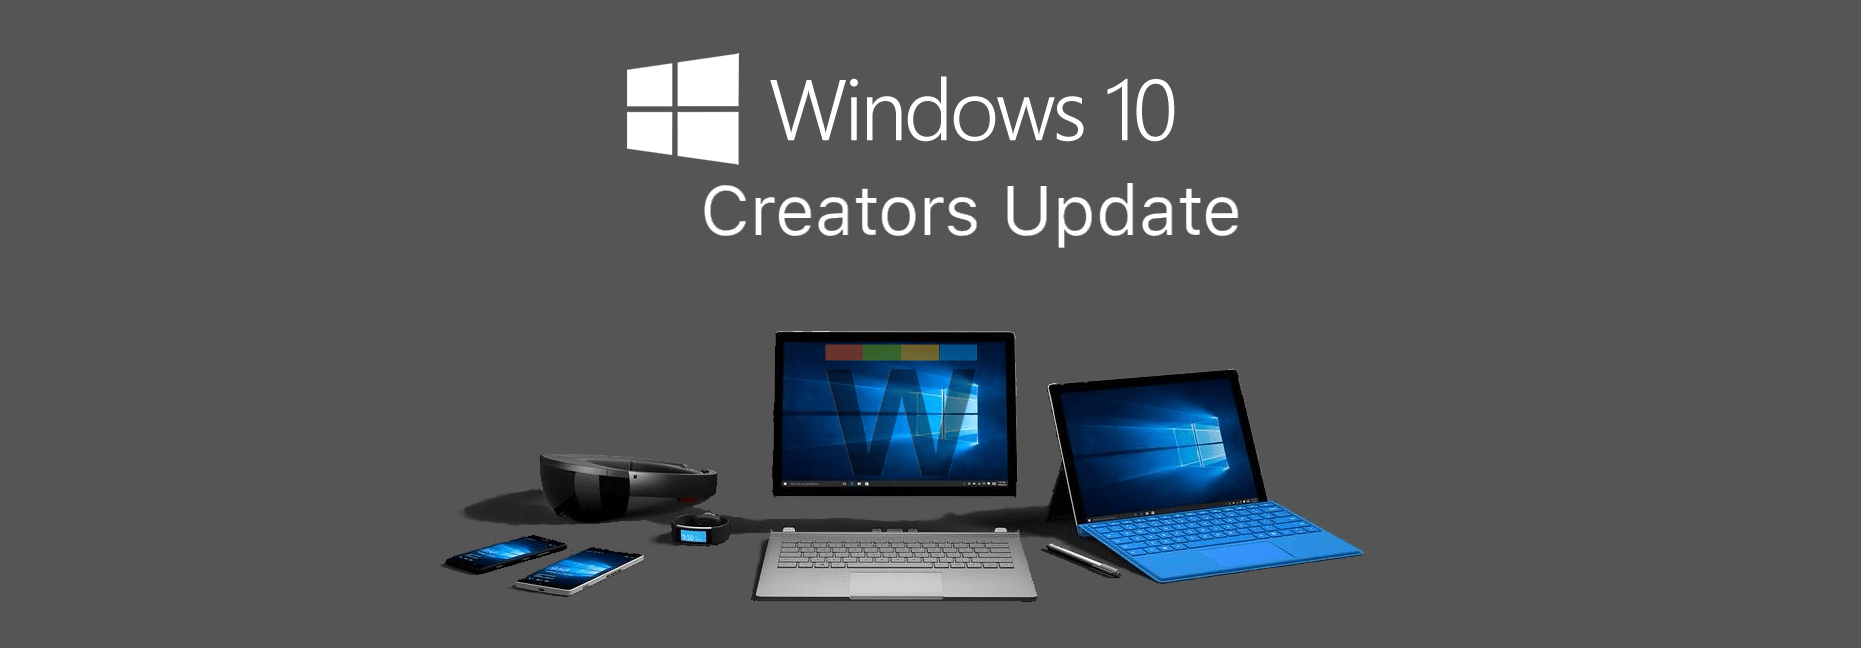 Windows 10 Creators Update supported Devices